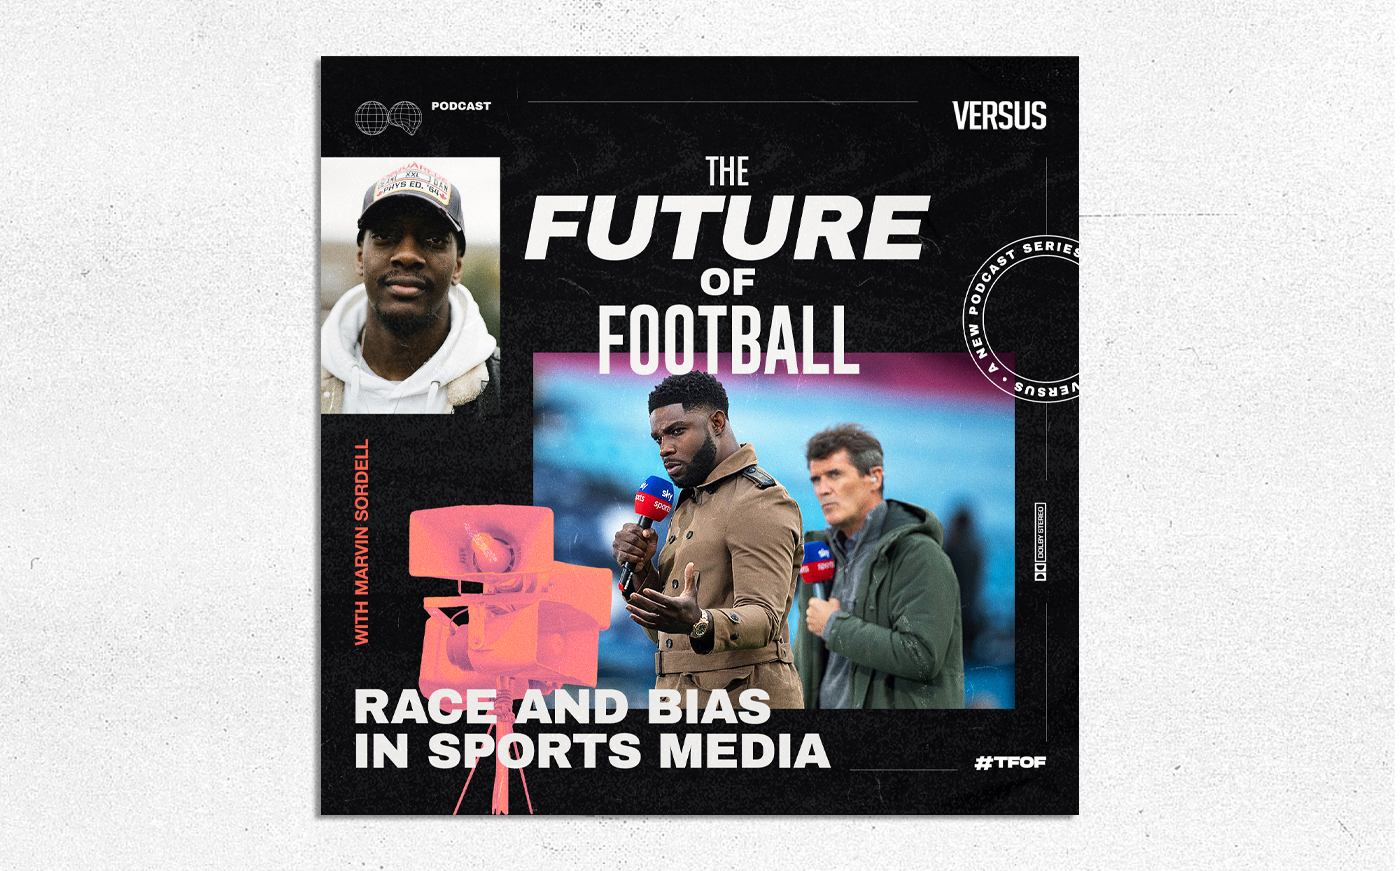 'Race and Bias in Sports Media' Is the First Subject of Our New Podcast, 'The Future of Football'